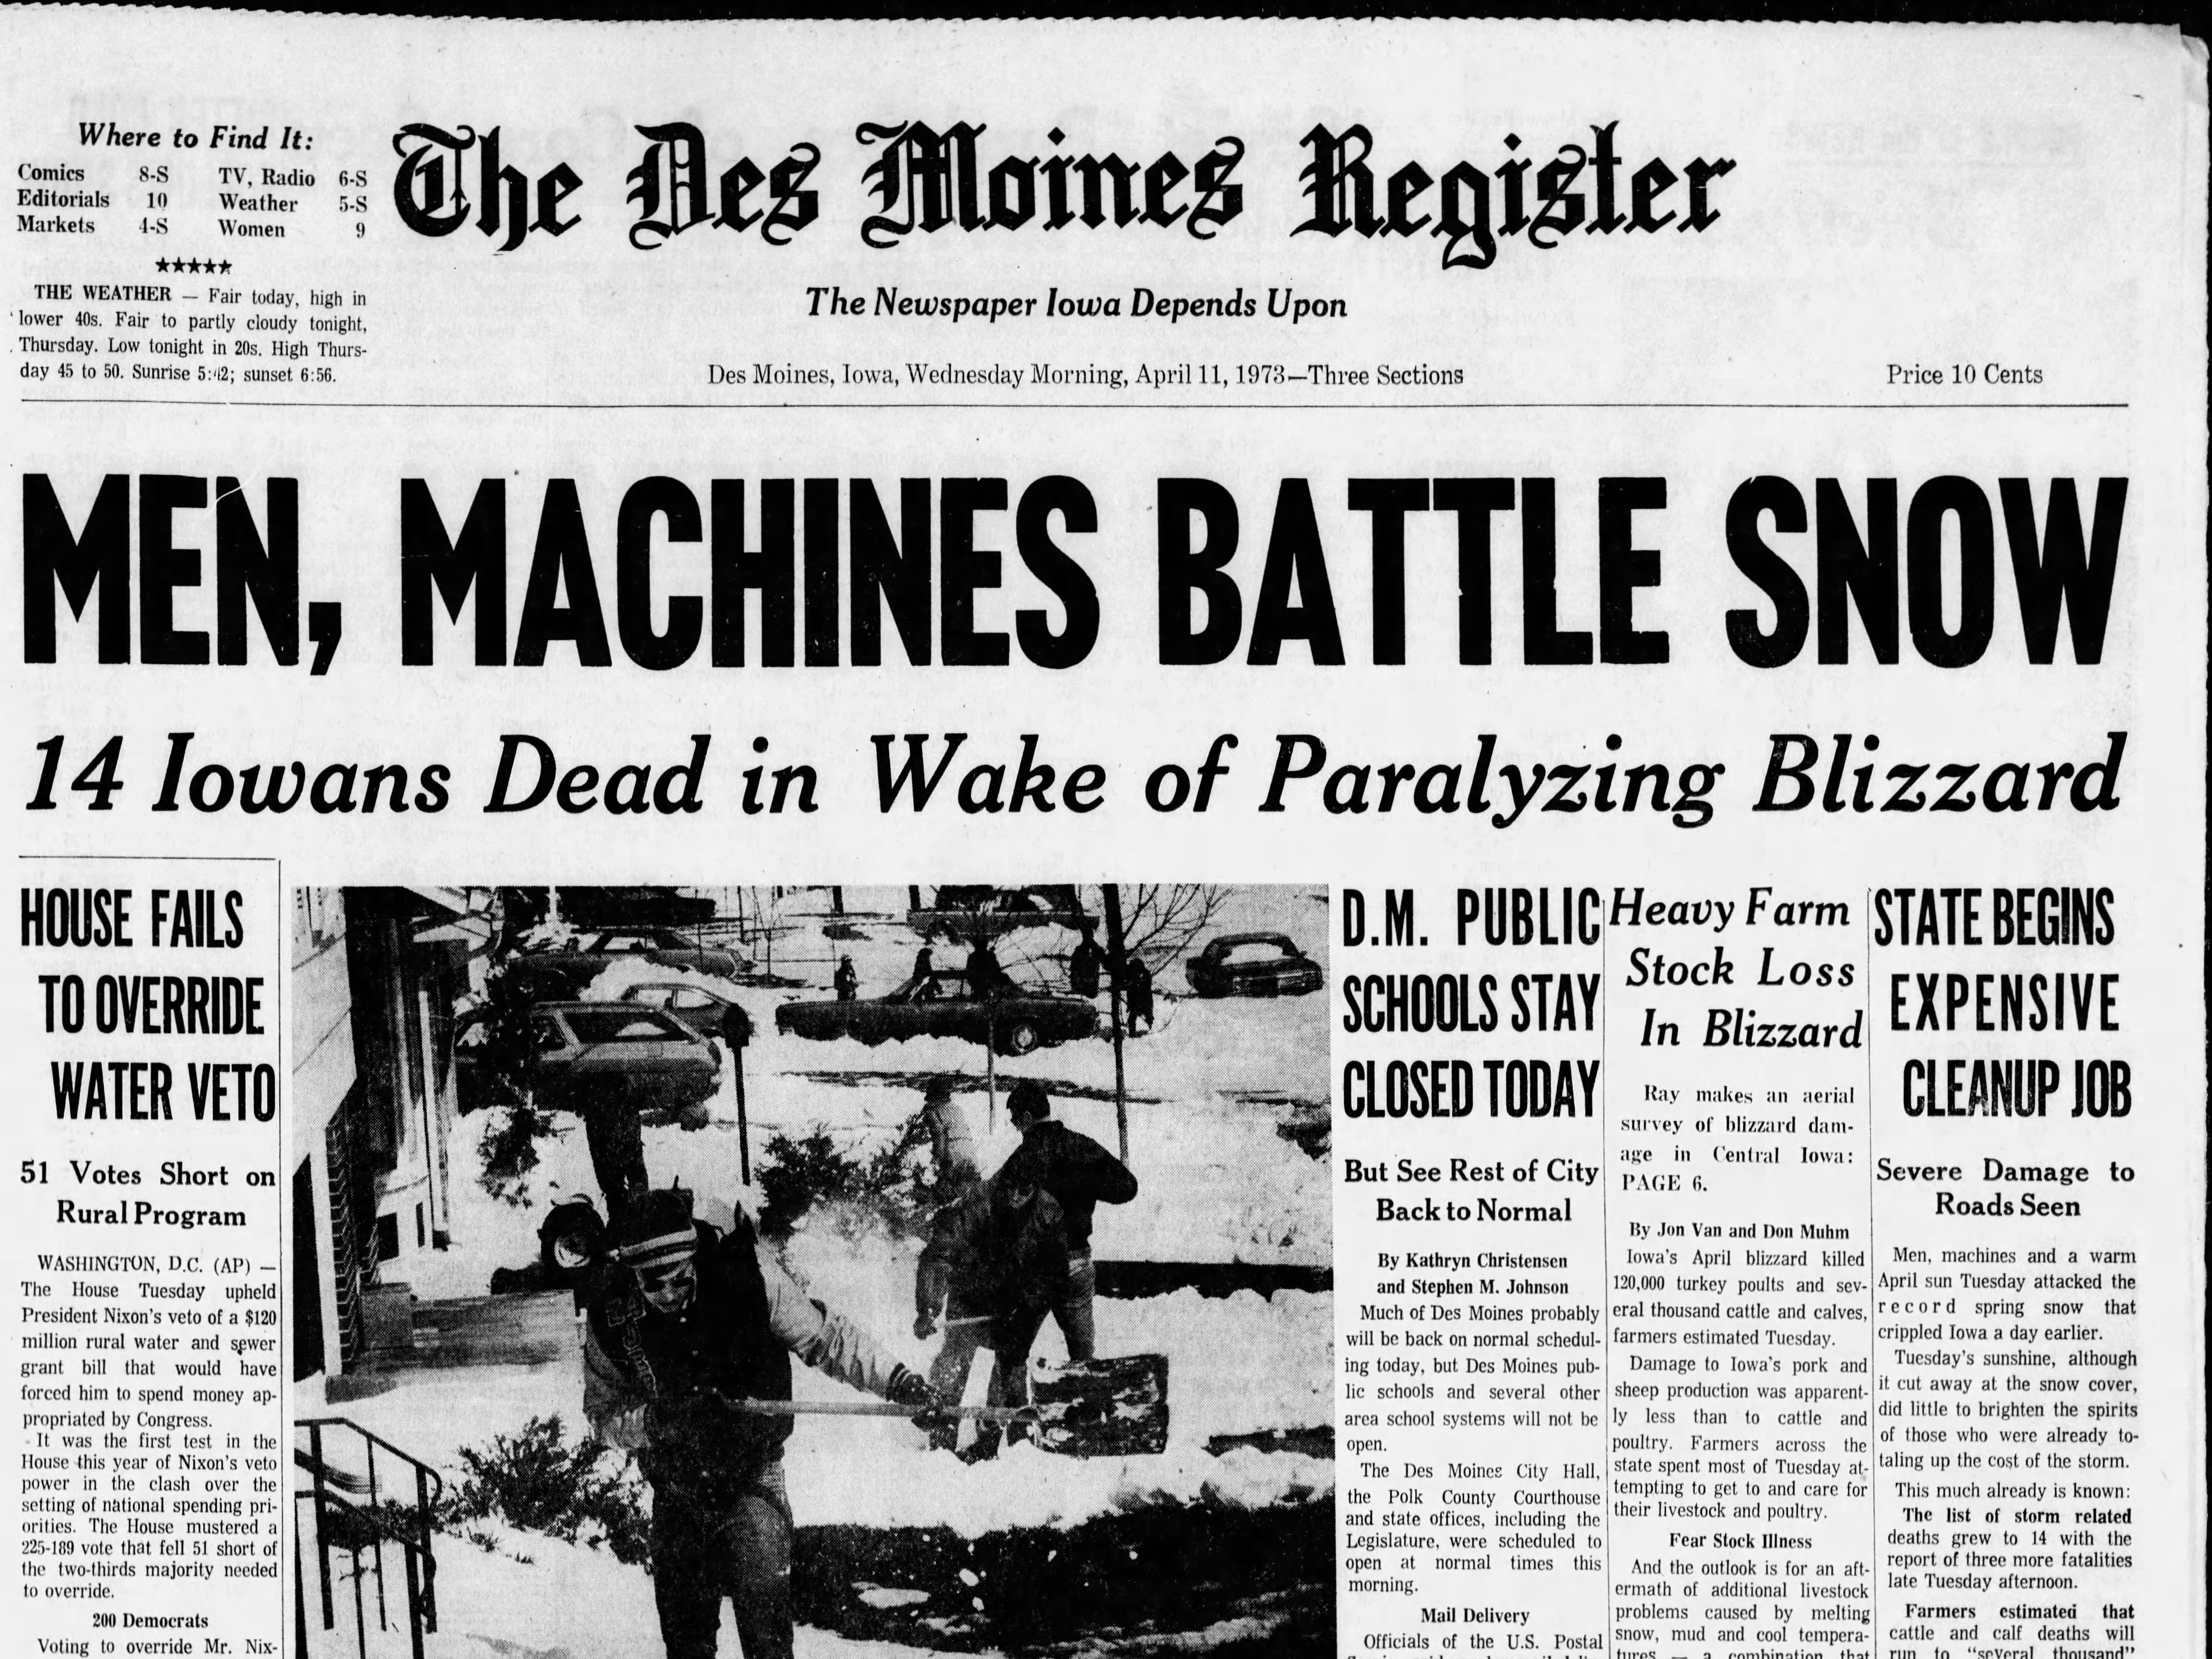 Page 1A of the April 11, 1973 Des Moines Register, with coverage of one of the worst spring blizzards ever recorded in April.